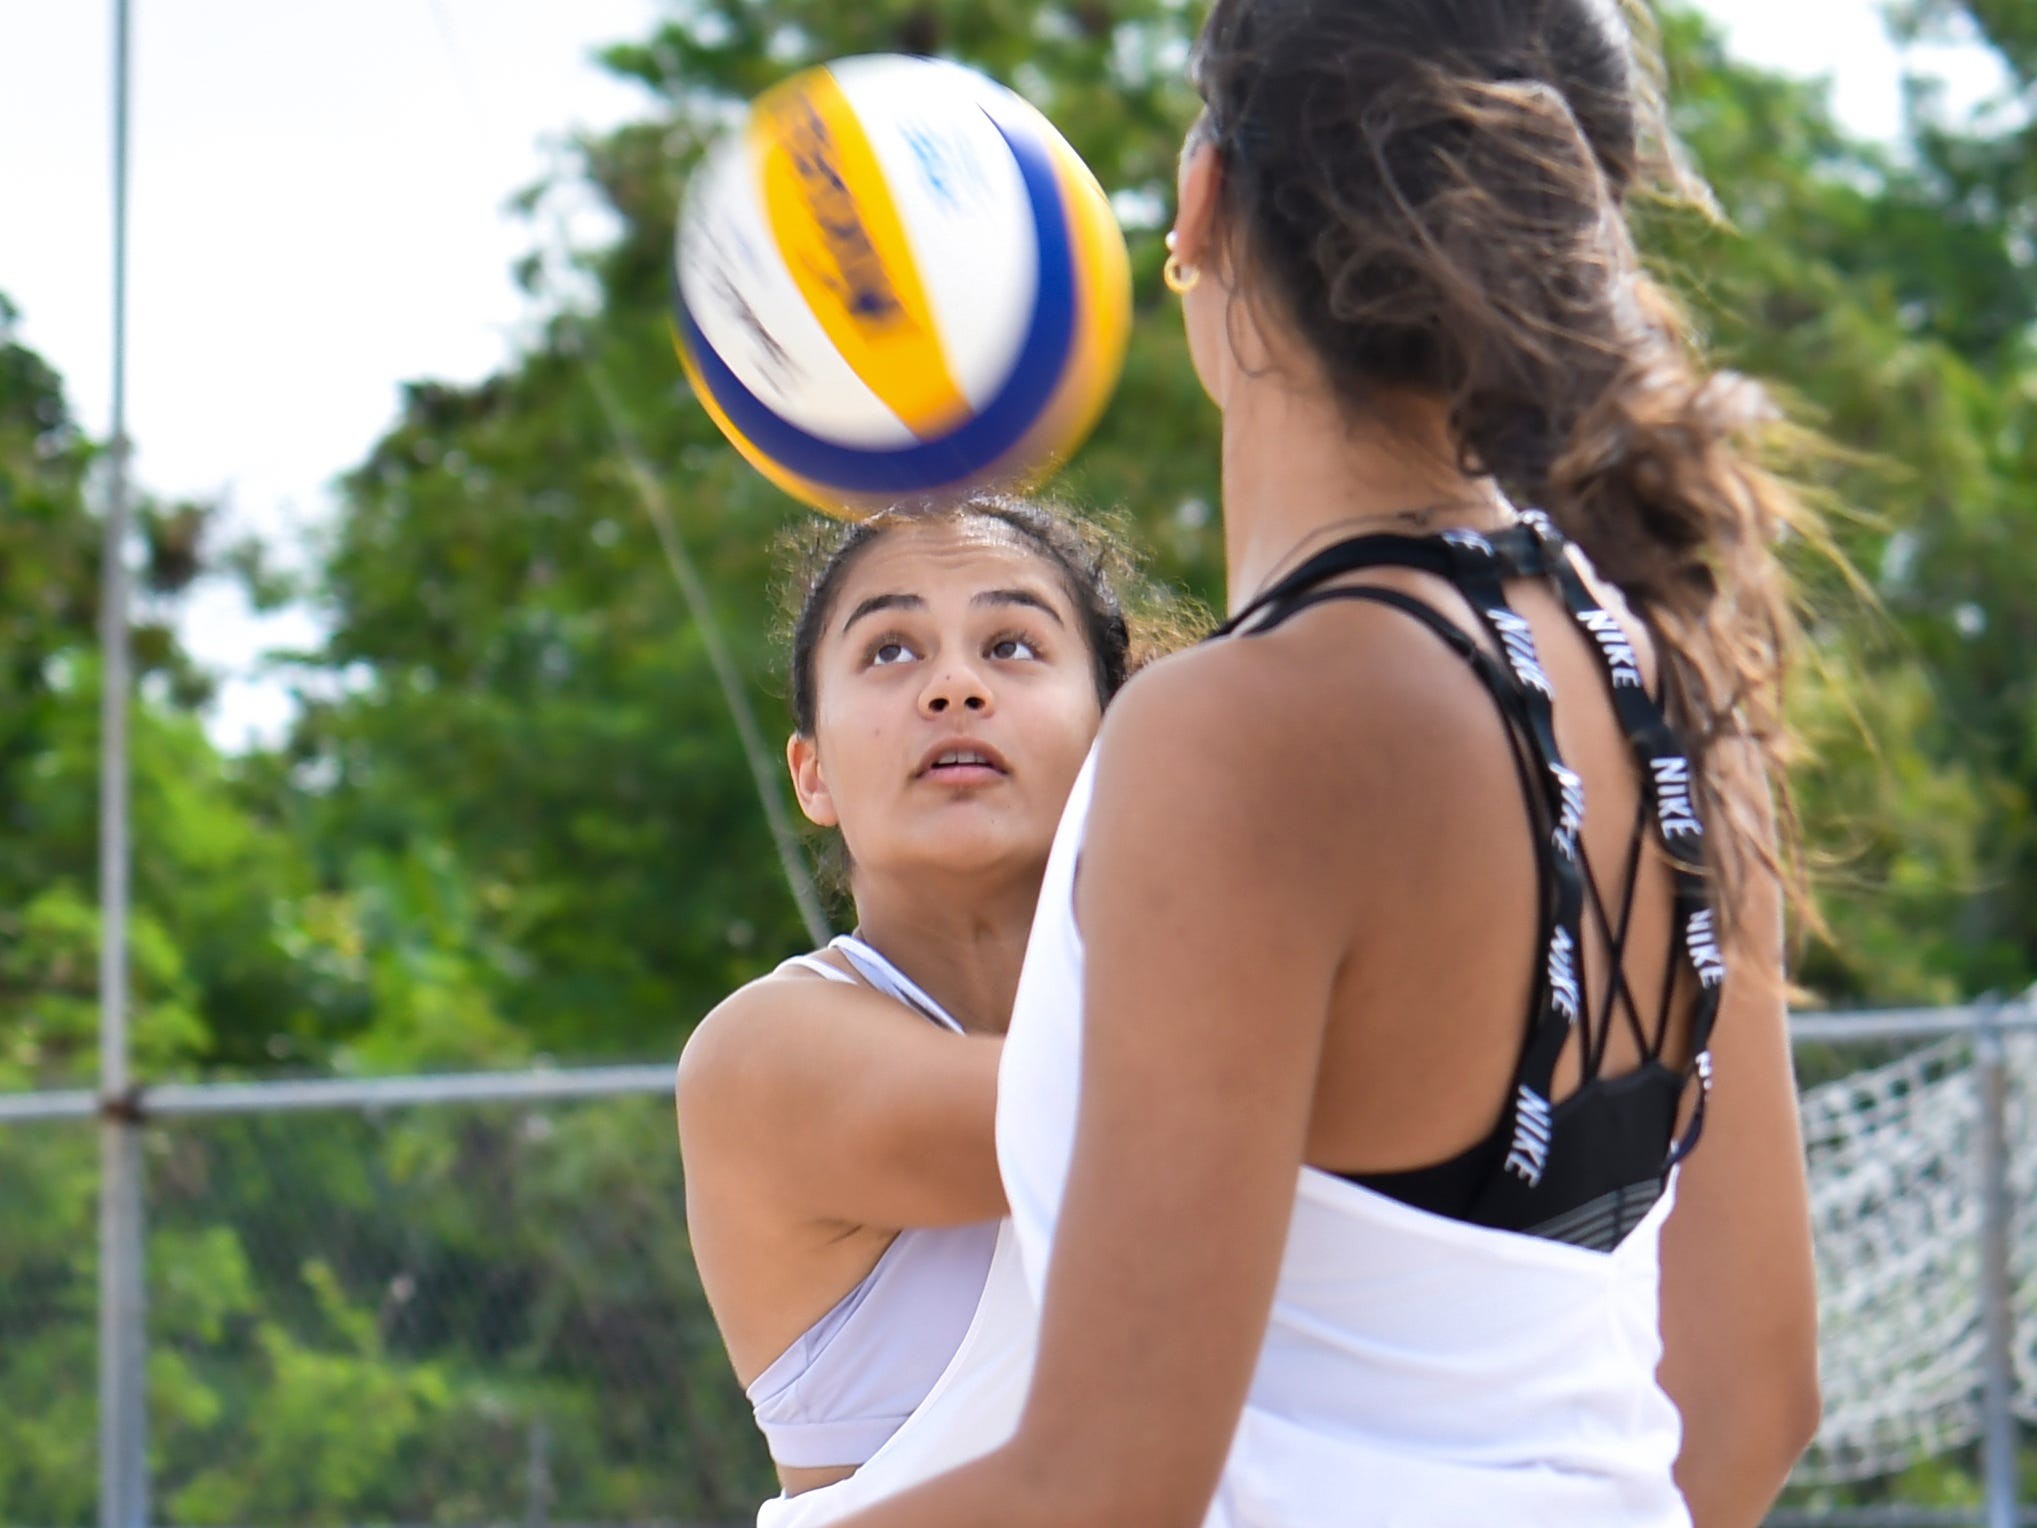 St. John's Knights White's Hana Fernandez maintains eye contact with the ball during an IIAAG beach volleyball game against the Harvest Christian Academy Eagles at the Guam Football Association National Training Center in Dededo on Saturday, Feb. 9, 2019.